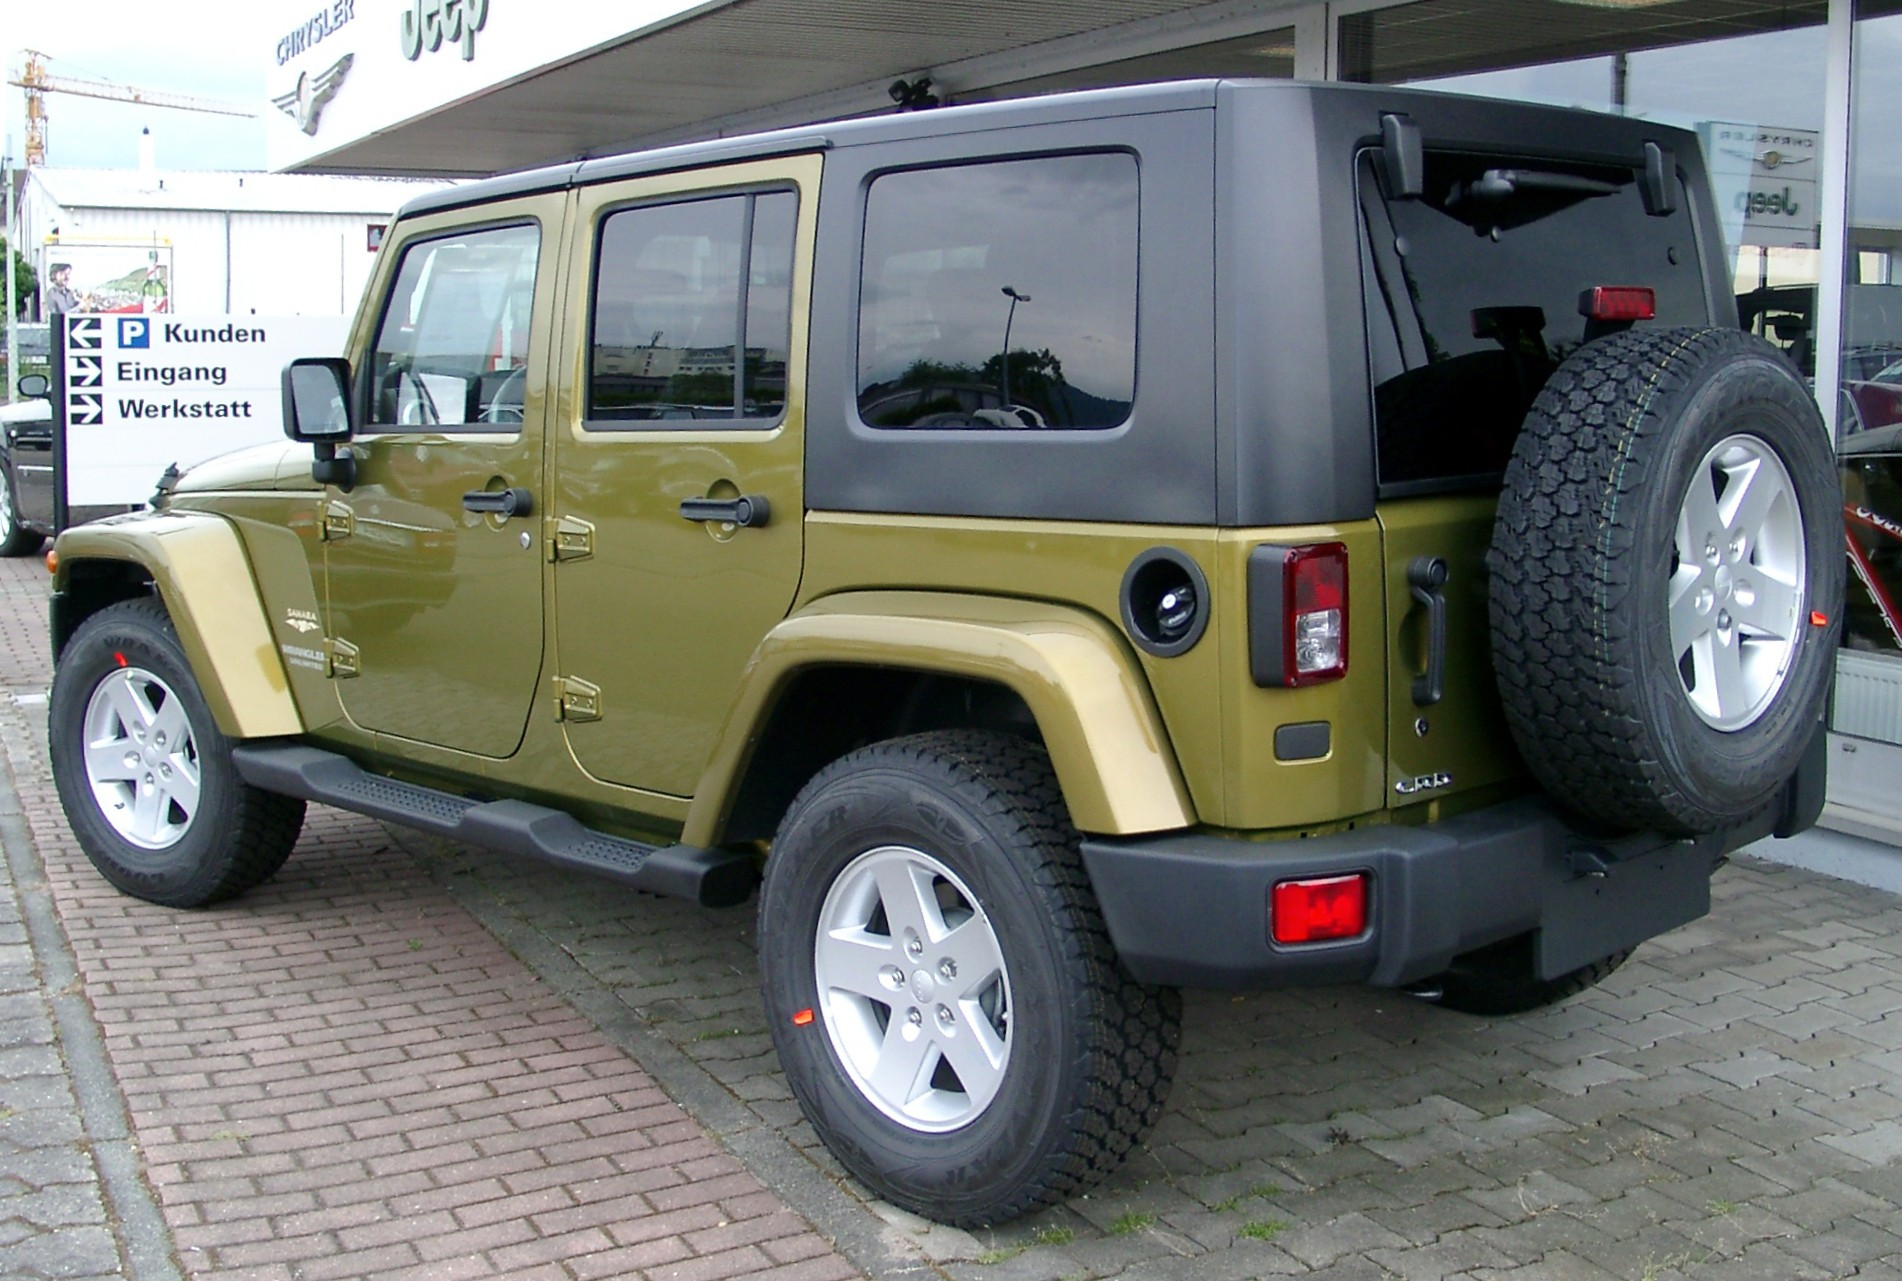 file:jeep wrangler unlimited rear 20080521 - wikimedia commons